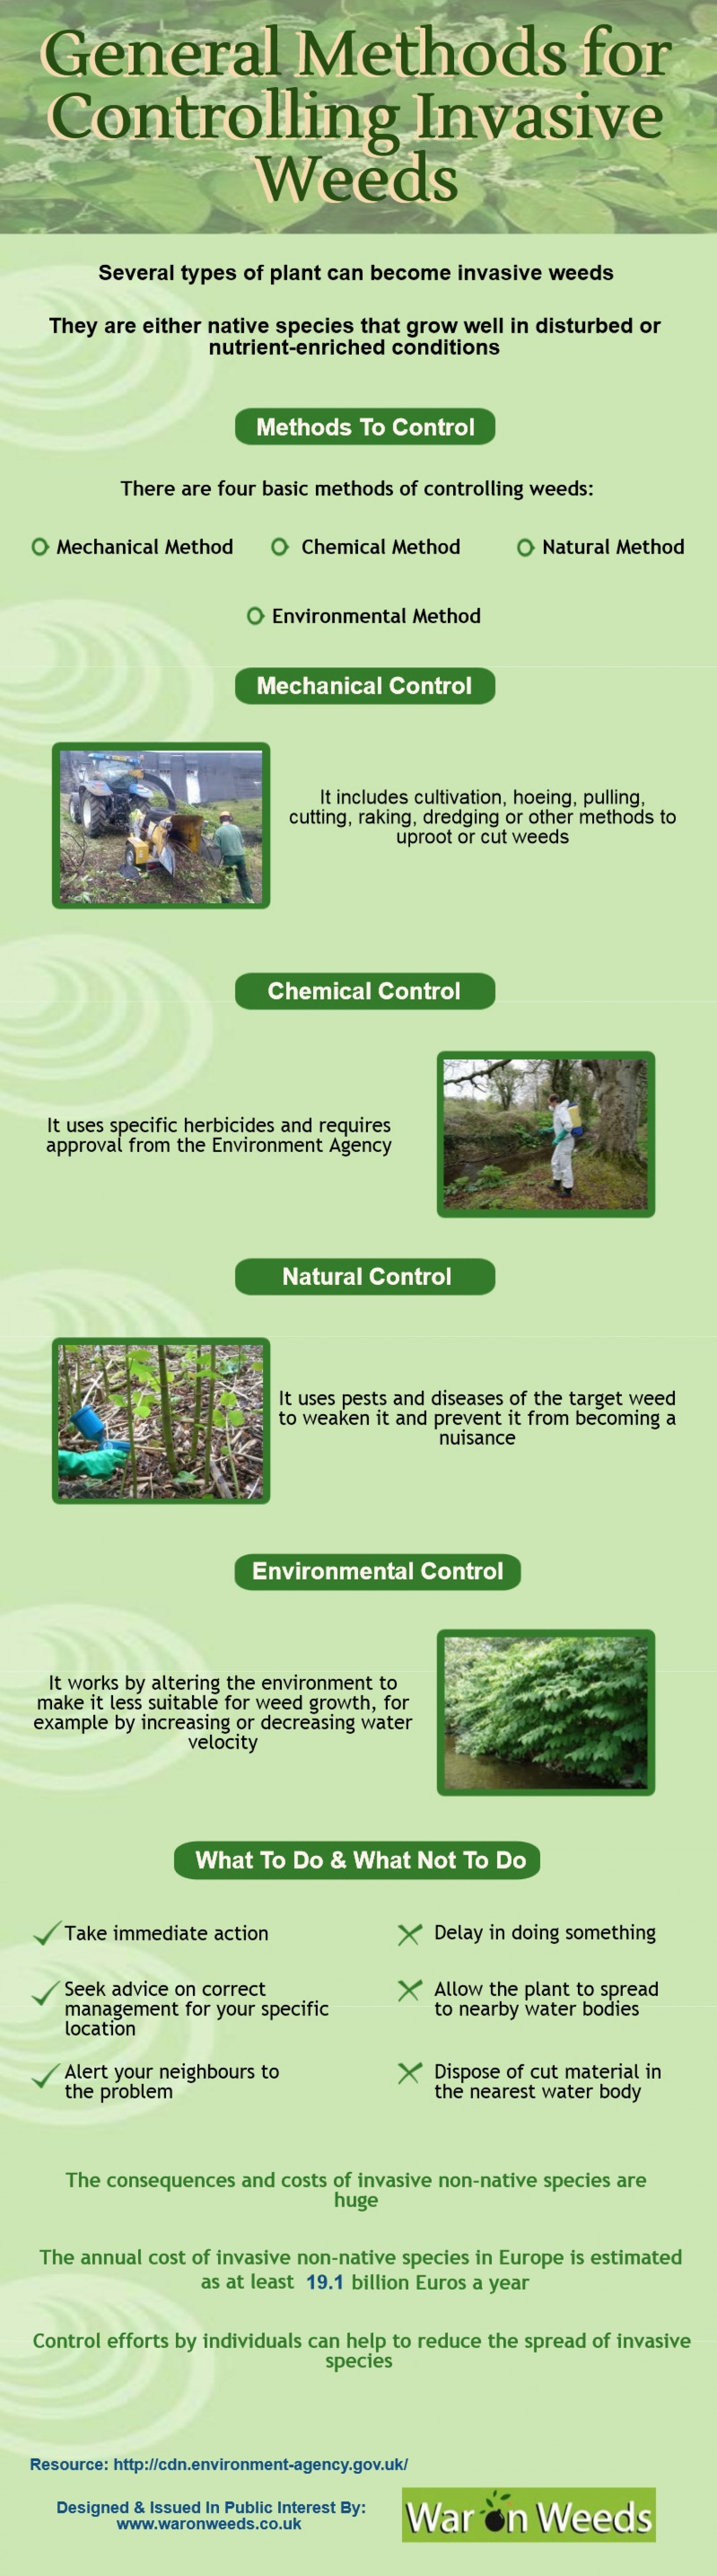 General Methods for Controlling Invasive Weeds Infographic